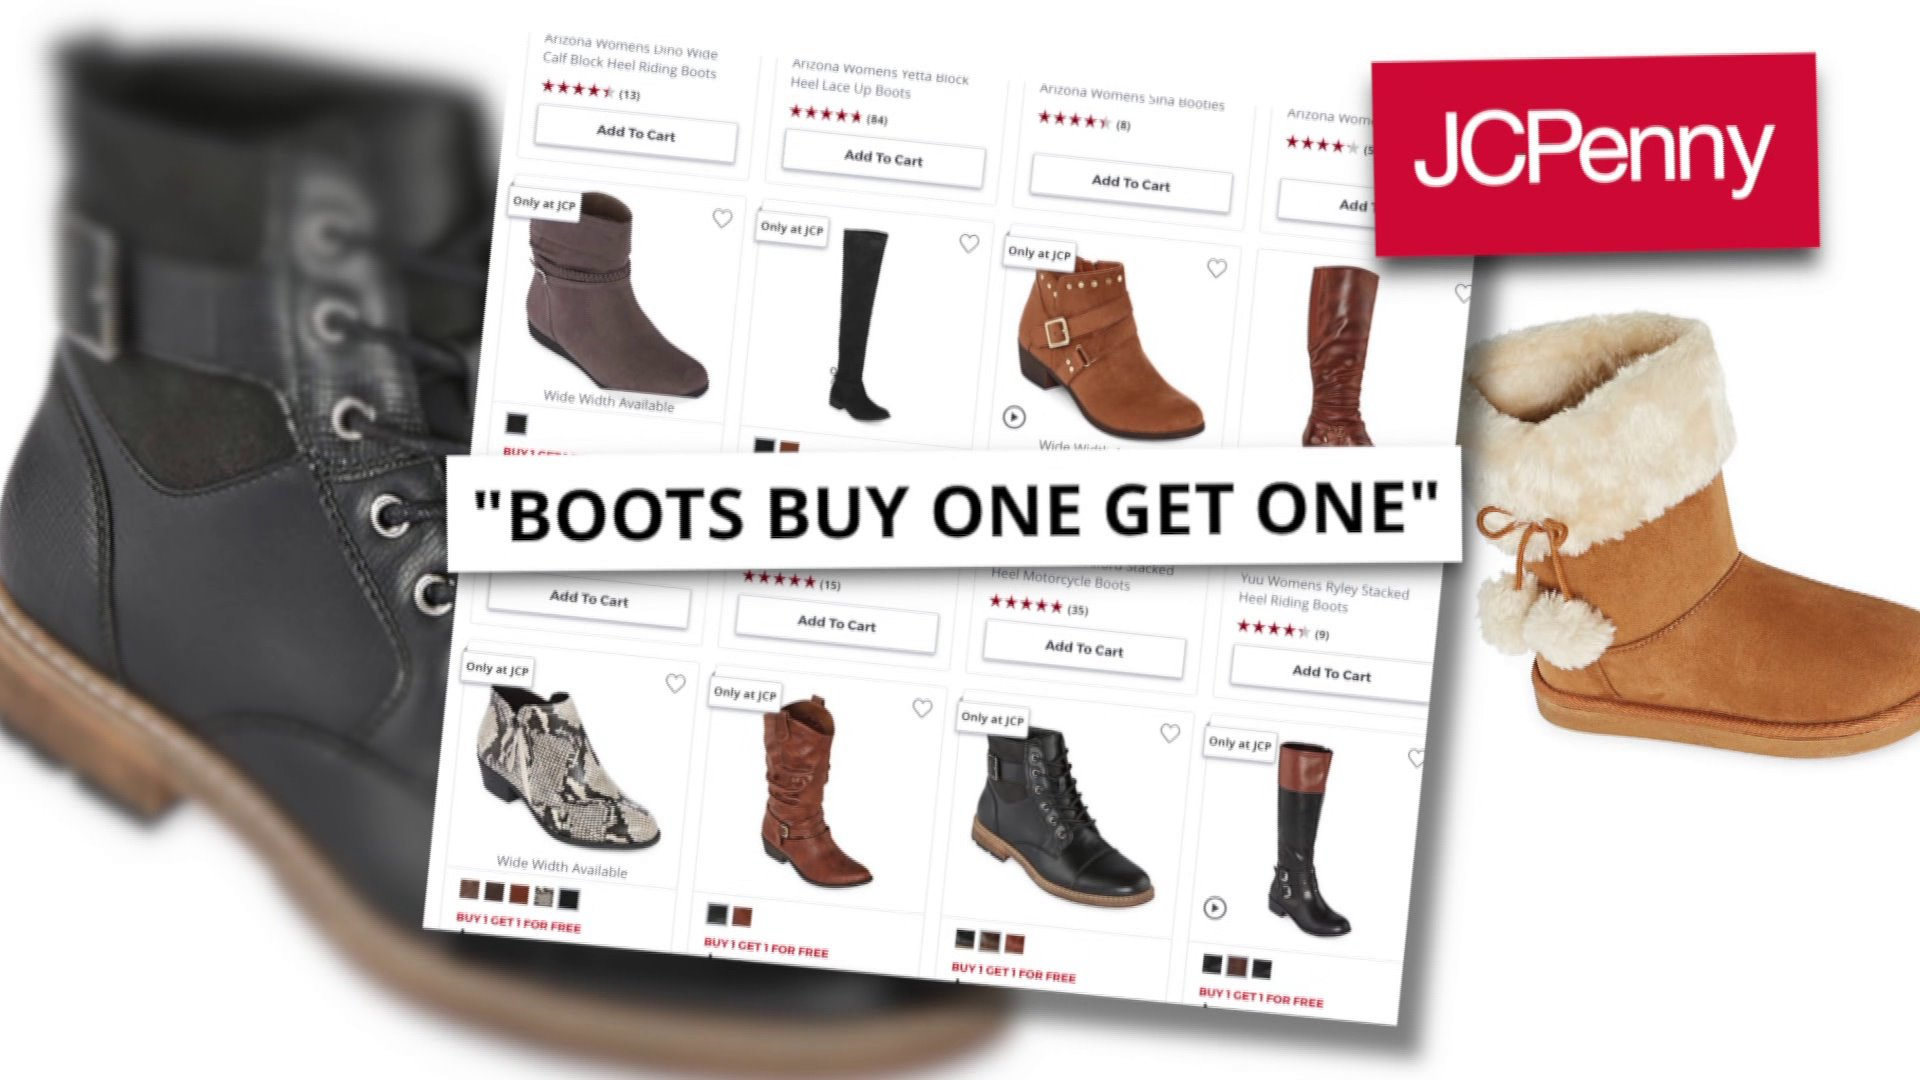 Money saver: 'Buy one, get one' boot